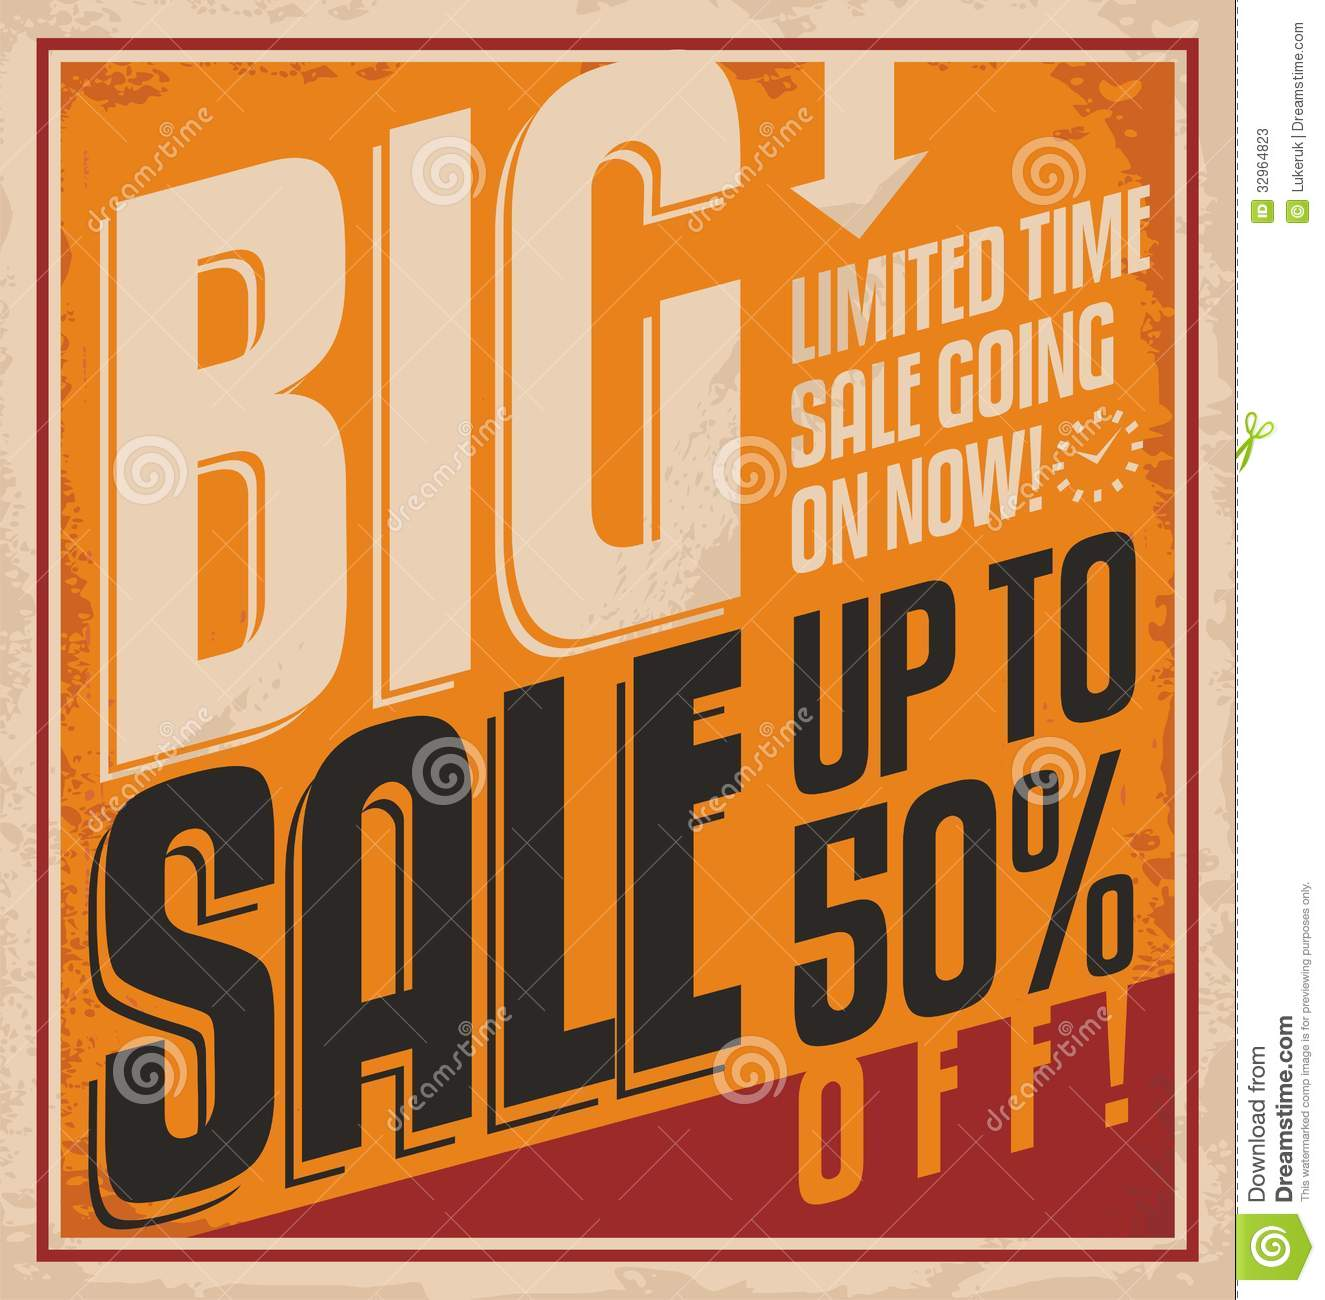 Big sale vintage poster template stock vector for Poster prints for sale